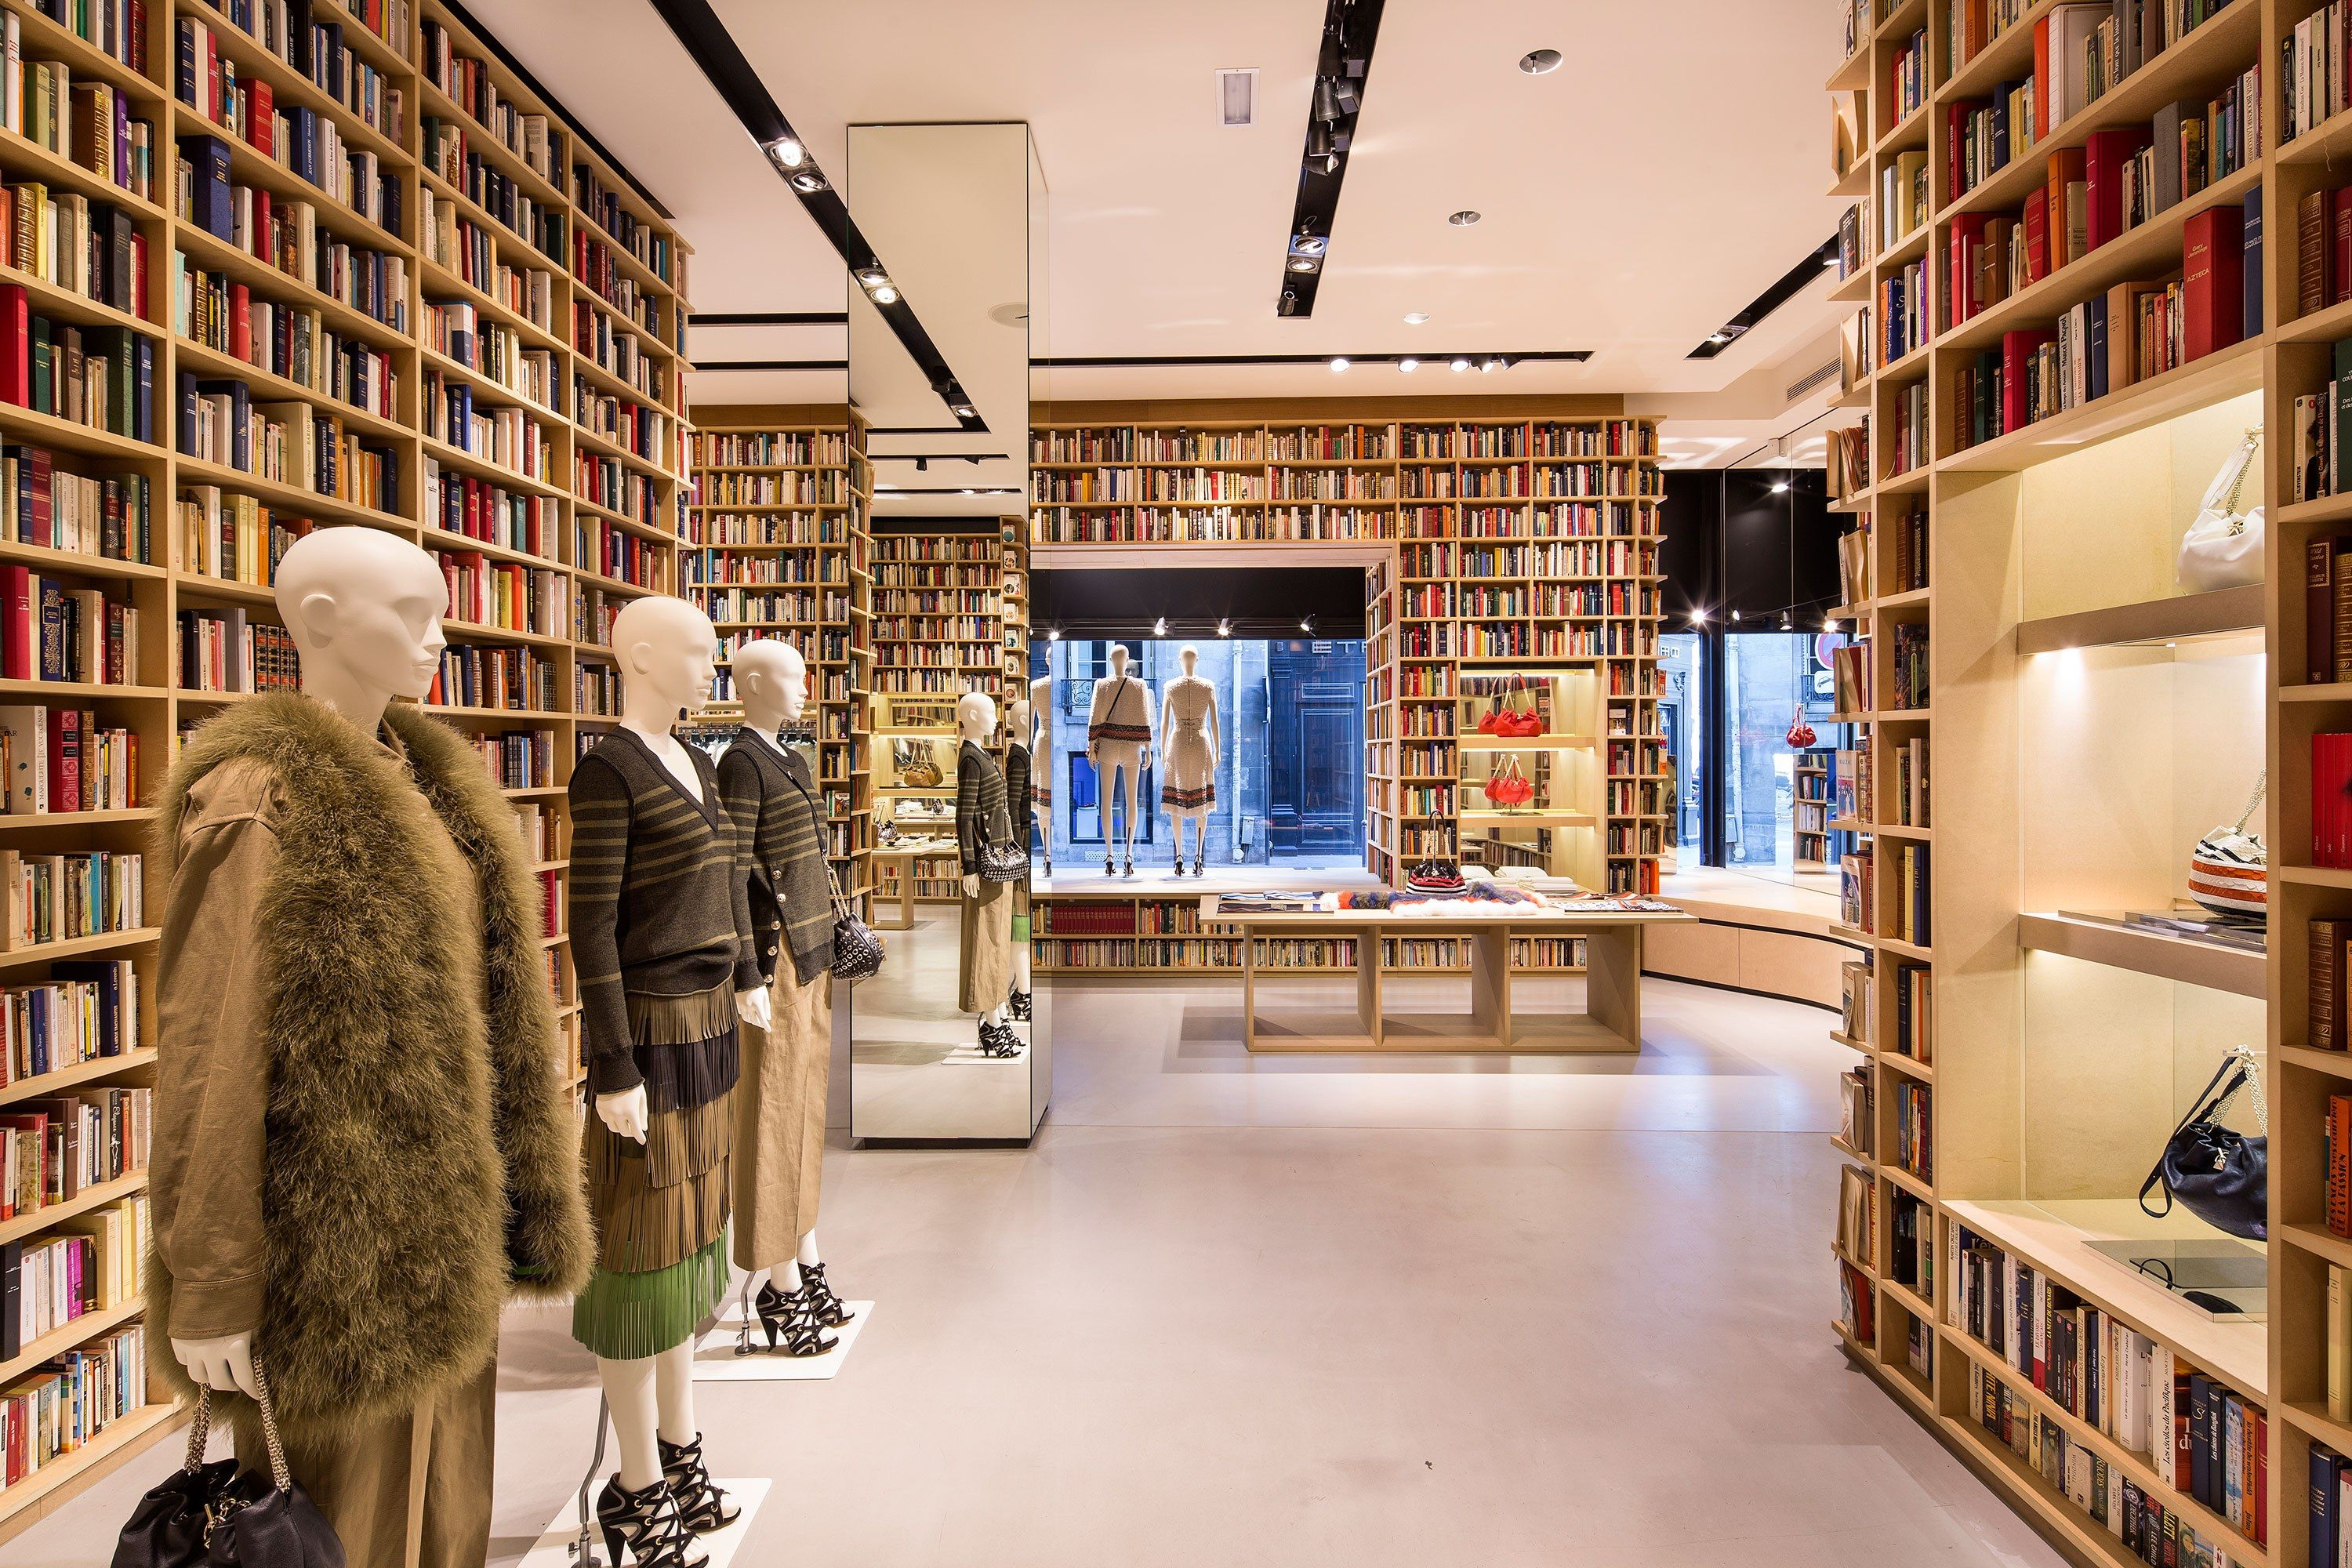 b6795c52d2 9 of the Best Women's Clothing Stores in Paris Photos   Architectural Digest